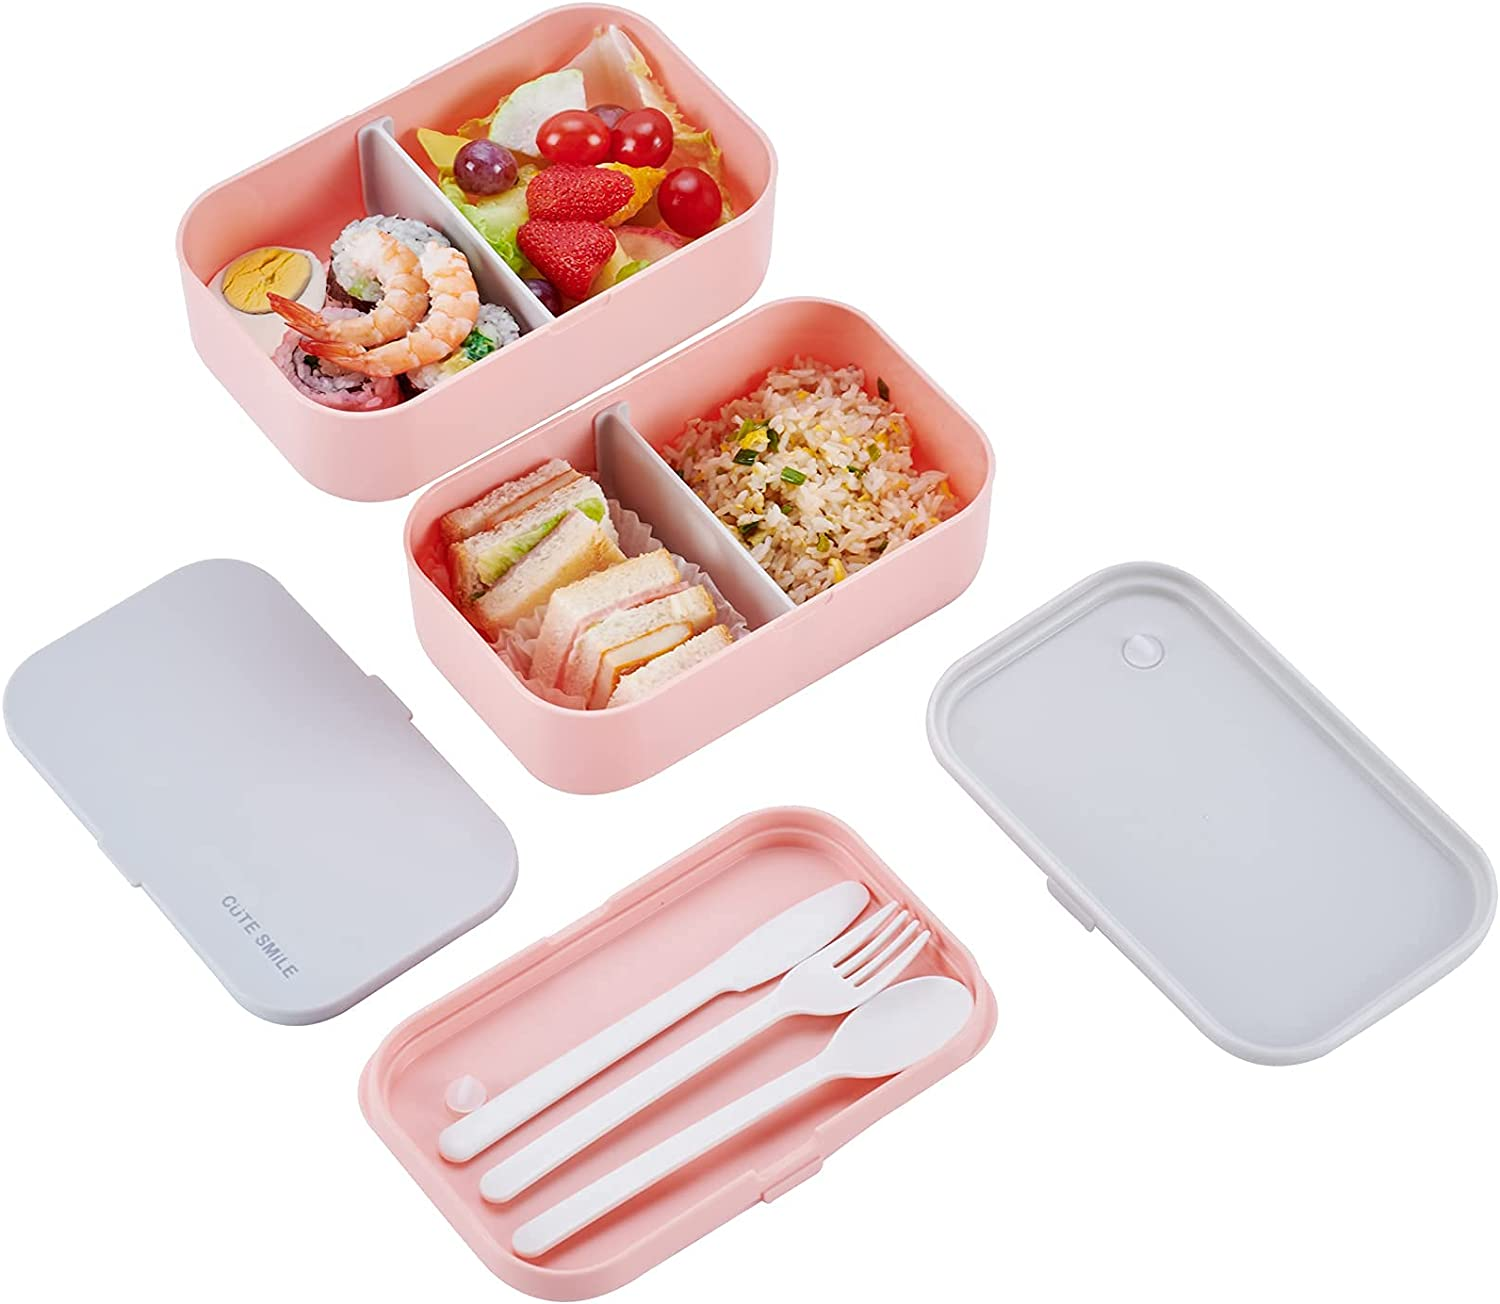 CUTE SMILE Premium Bento Box 2021 New Model Large Size 68 oz Lunch Containers for Women ReusableUtensils BPA-Free Food Storage with2 Compartments& 2 Dividers & Free Carry Bag